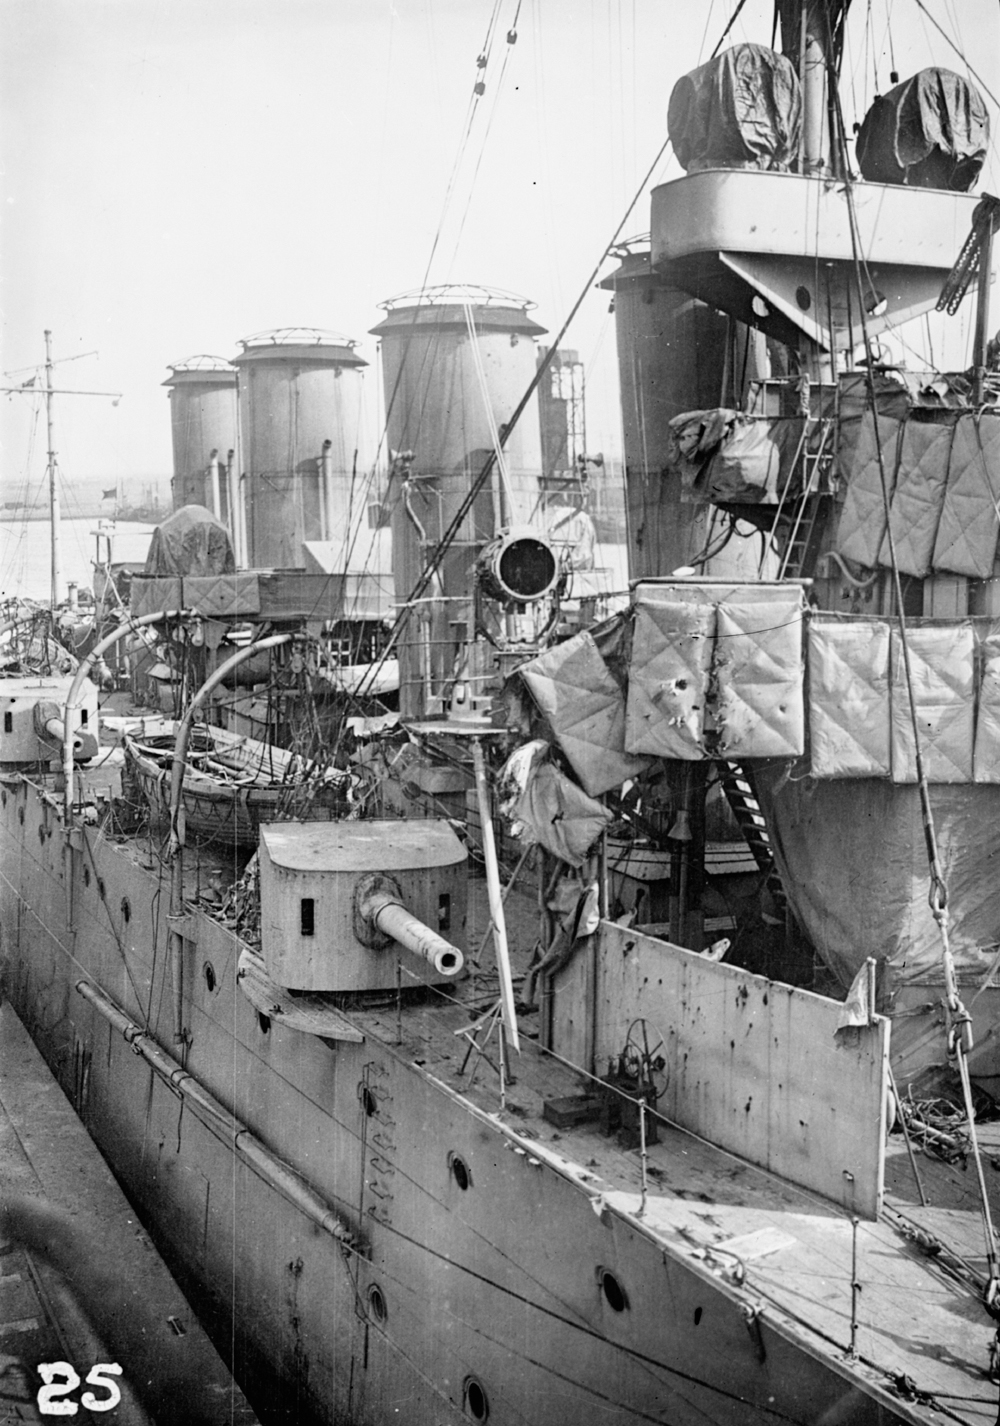 HMS Chester, showing damage to the funnels and foretop sustained at the Battle of Jutland, 31 May 1916.